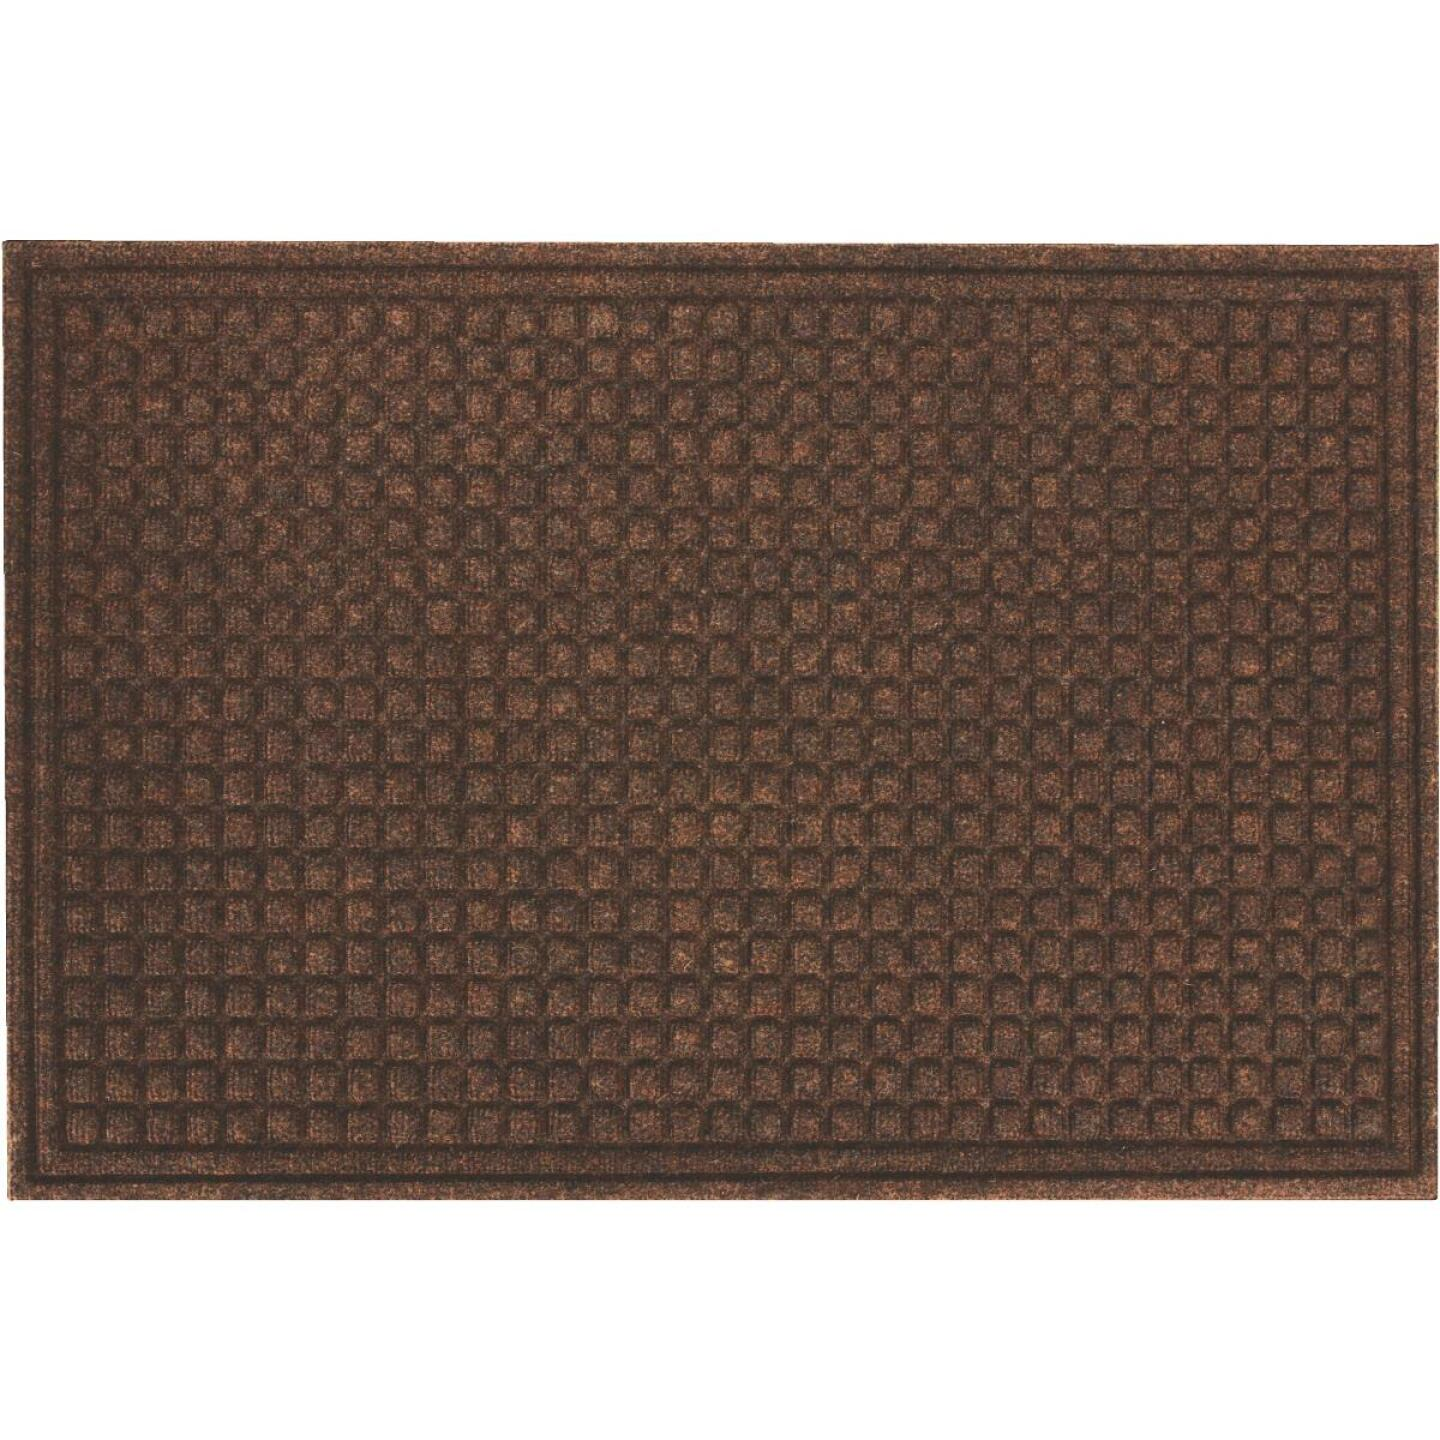 Apache Textures Walnut 24 In. x 36 In. Carpet/Recycled Rubber Door Mat Image 1